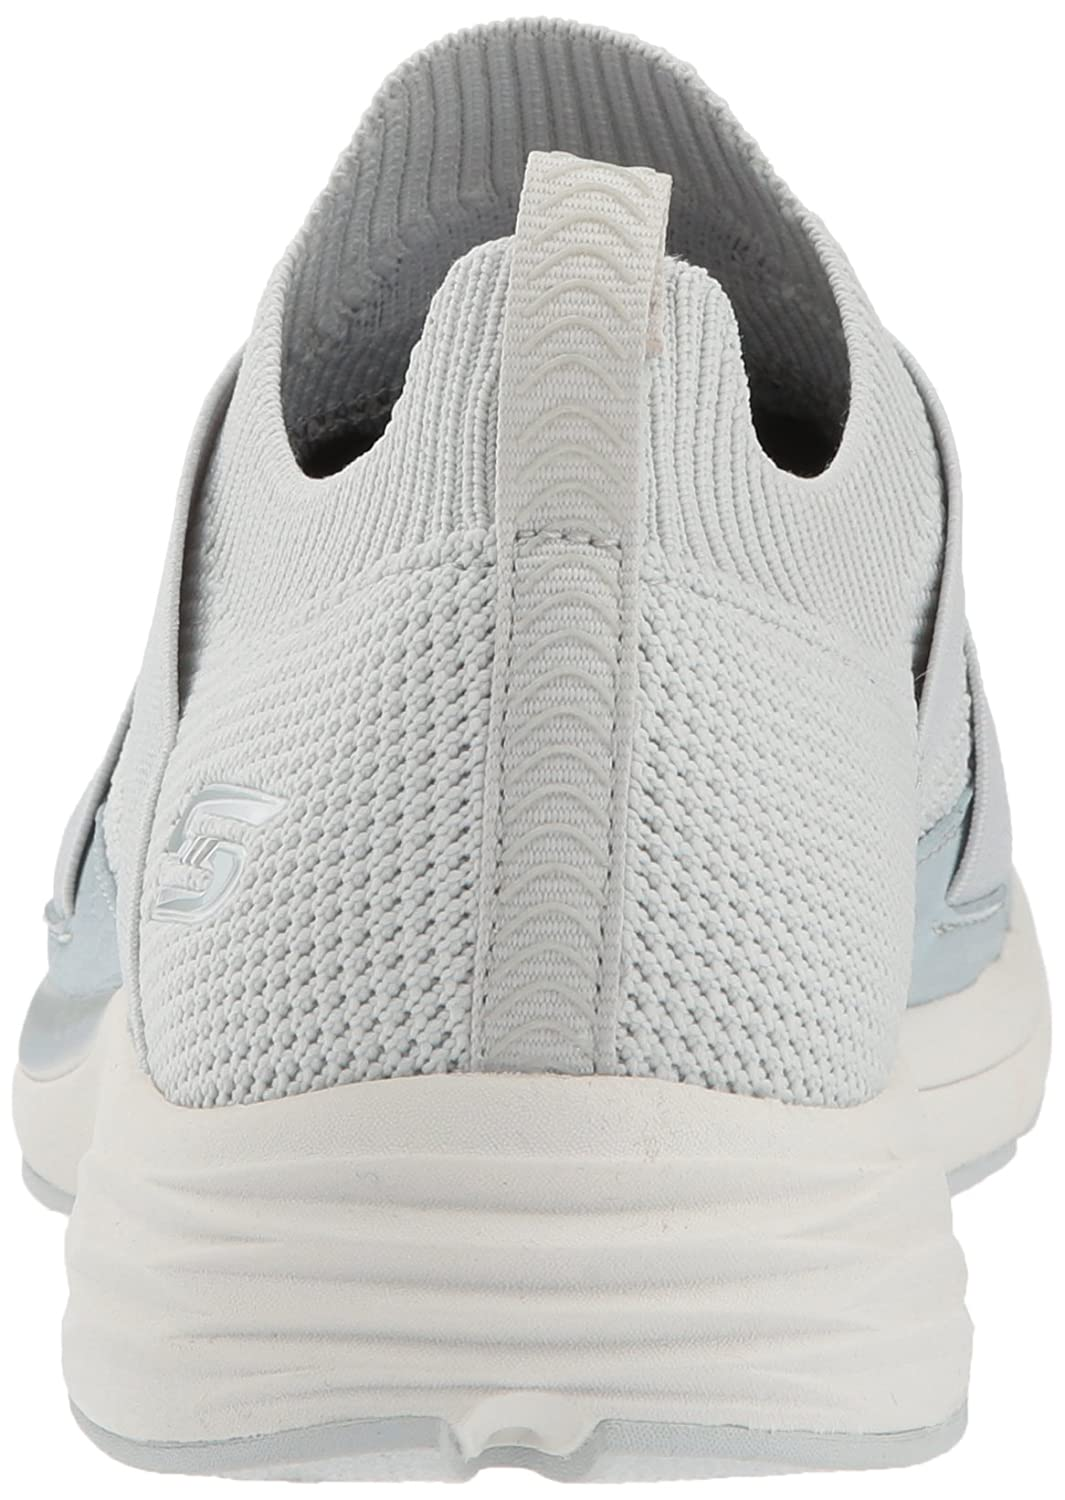 Skechers BOBS B078C948WR from Women's Bobs Clique Sneaker B078C948WR BOBS 5 M US|Ltgy ab2d6c